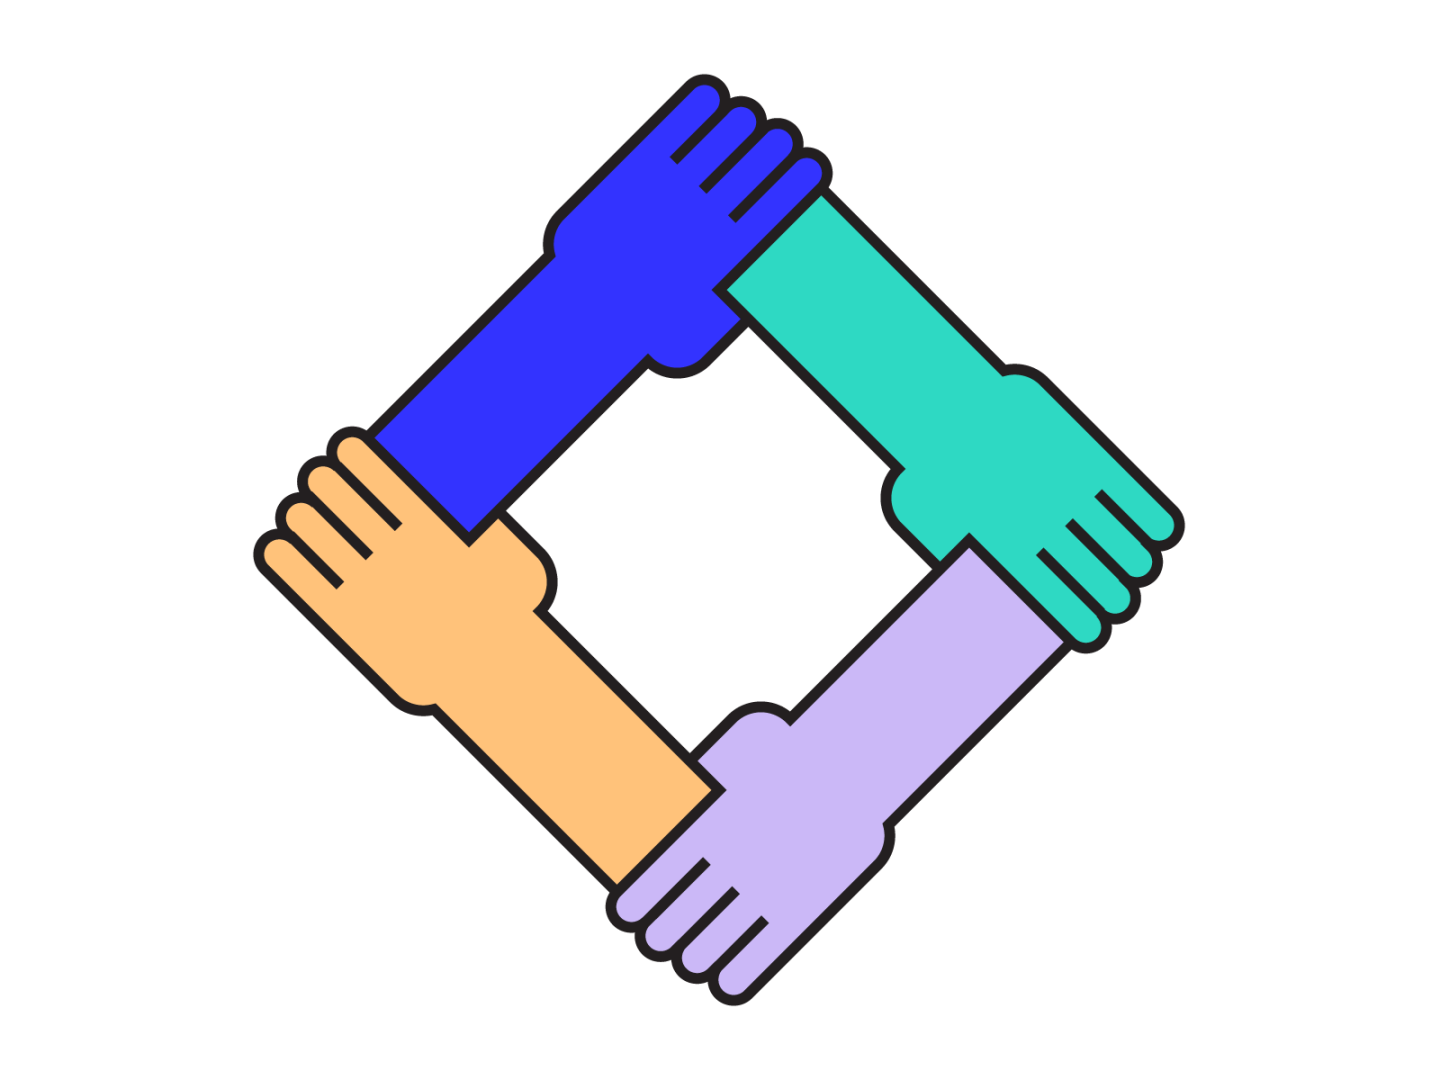 An illustration of 4 hands grabbing onto each other in different colors.